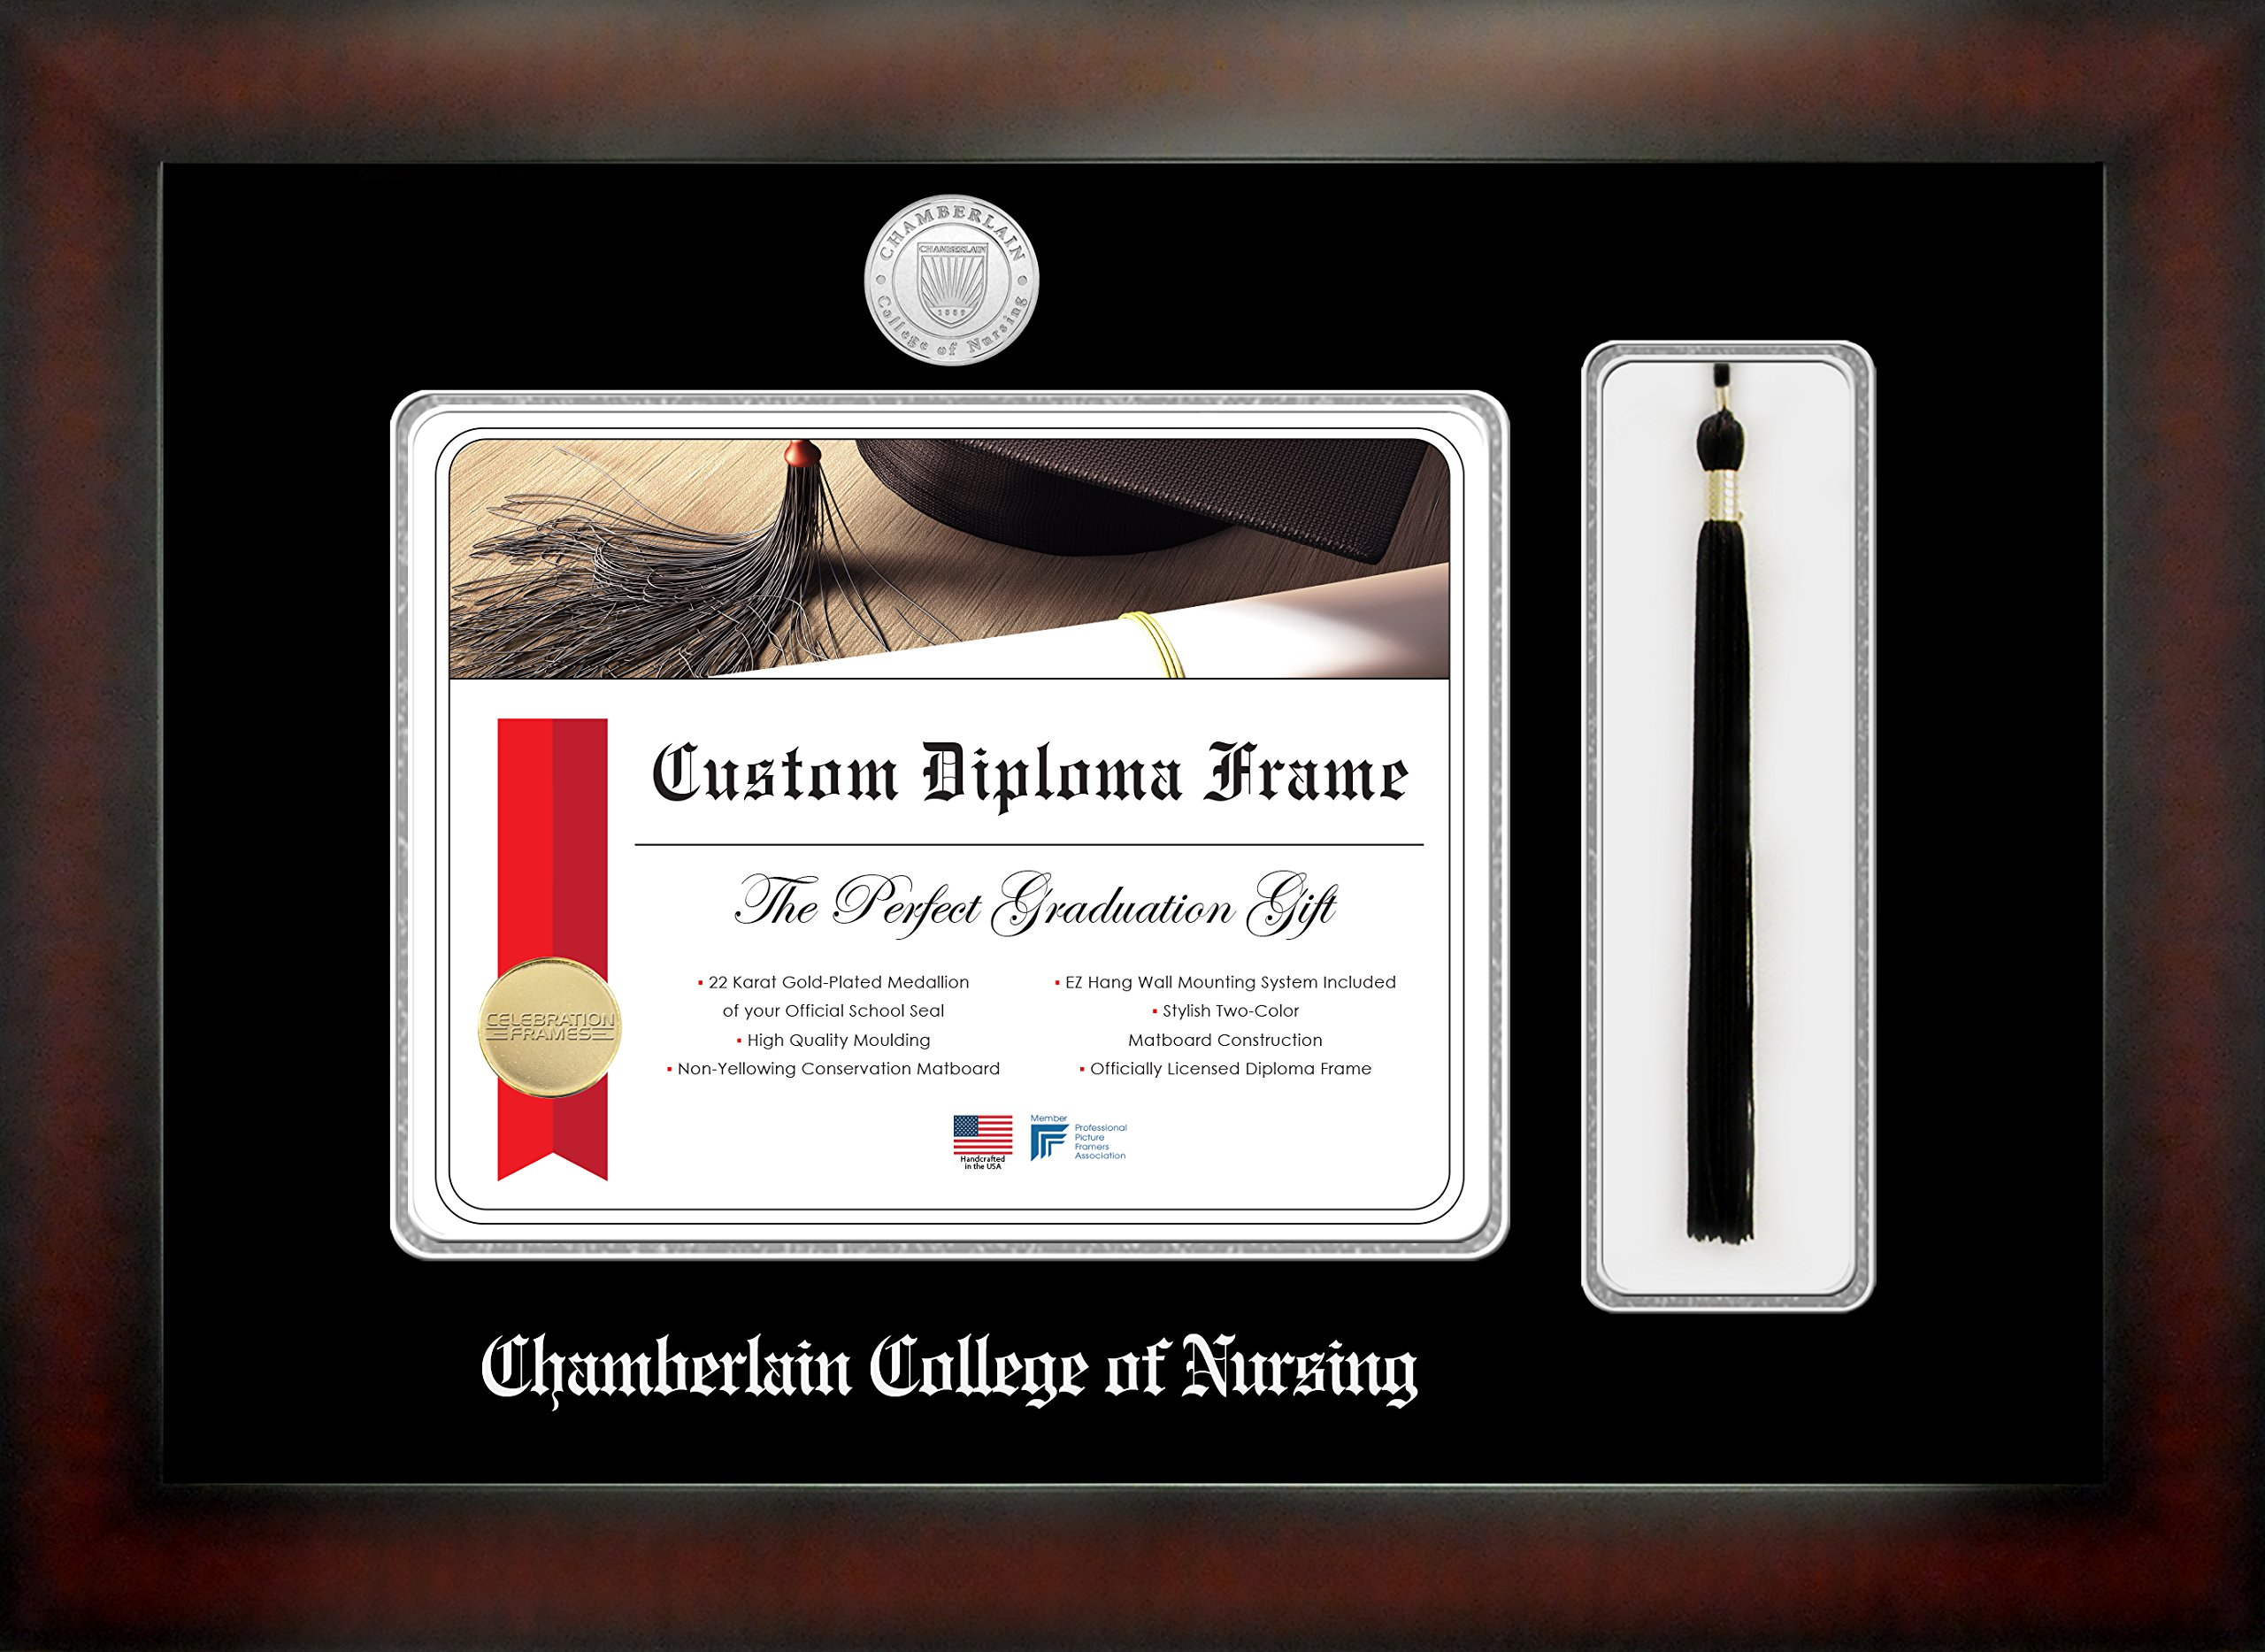 Chamberlain College of Nursing 8½ x 11 Mahogany Finish Infinity Diploma Frame with Tassel Box by Celebration Frames